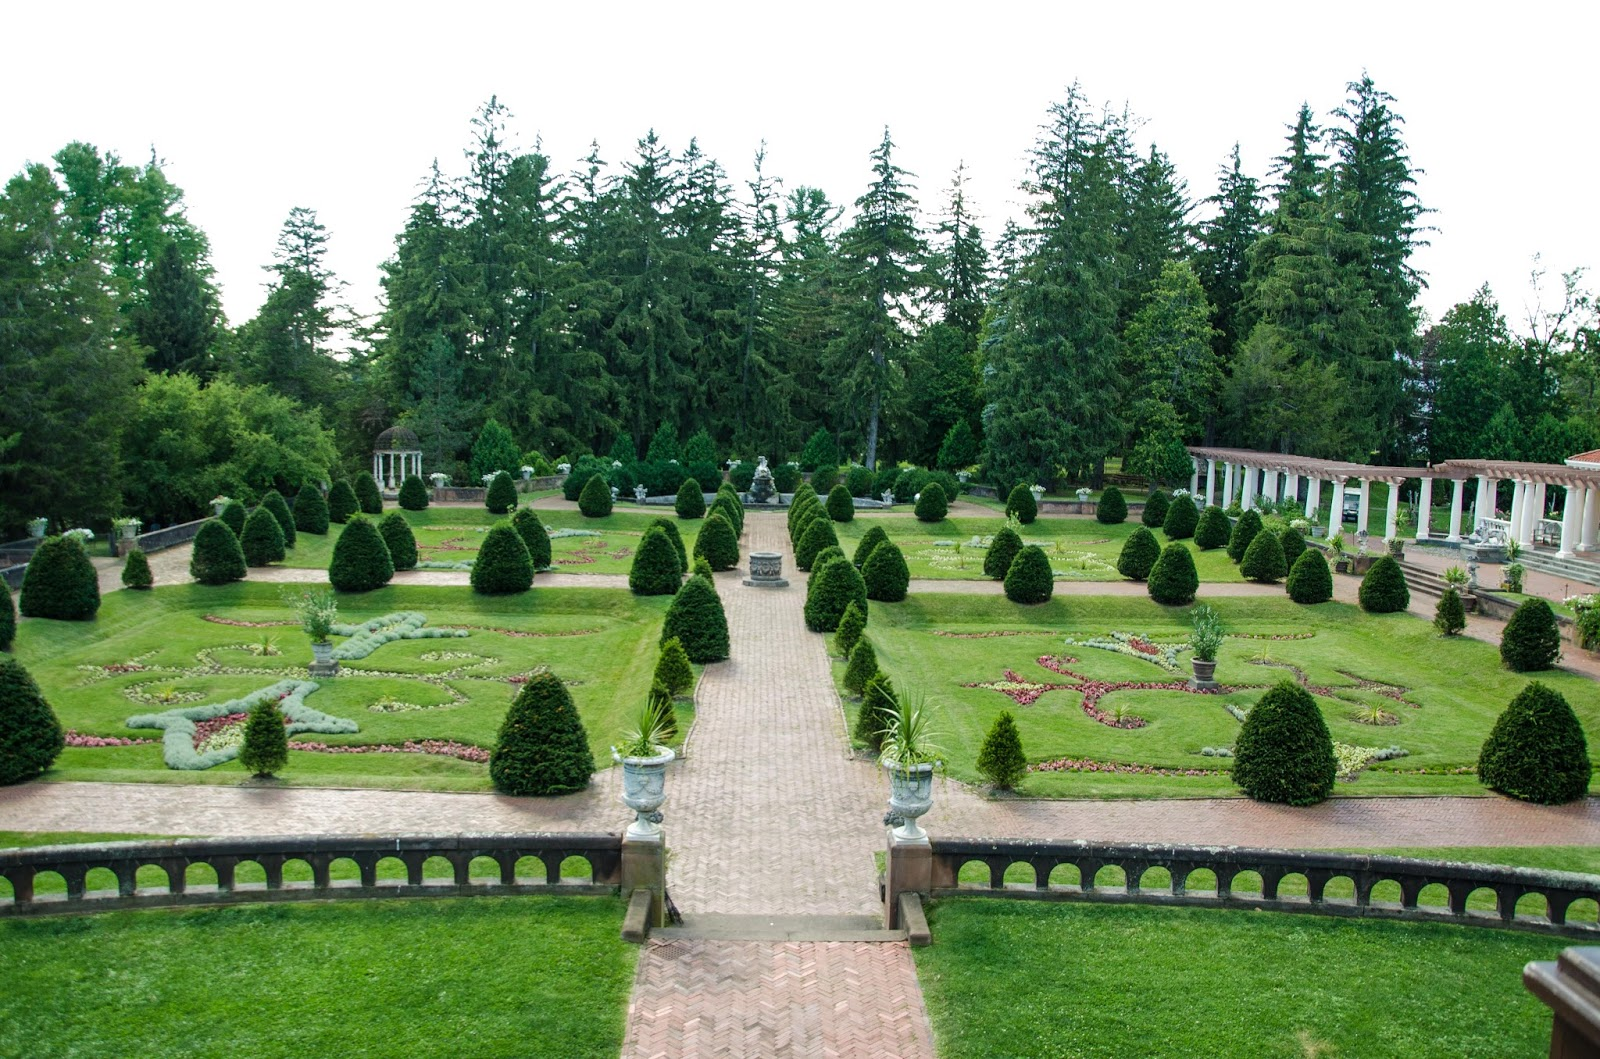 Italian country gardens - One Of The Most Splendid Gardens On The Grounds Is The Italian Garden Walking Through This Garden Is Like Being Transported To A Wonderful Garden In The